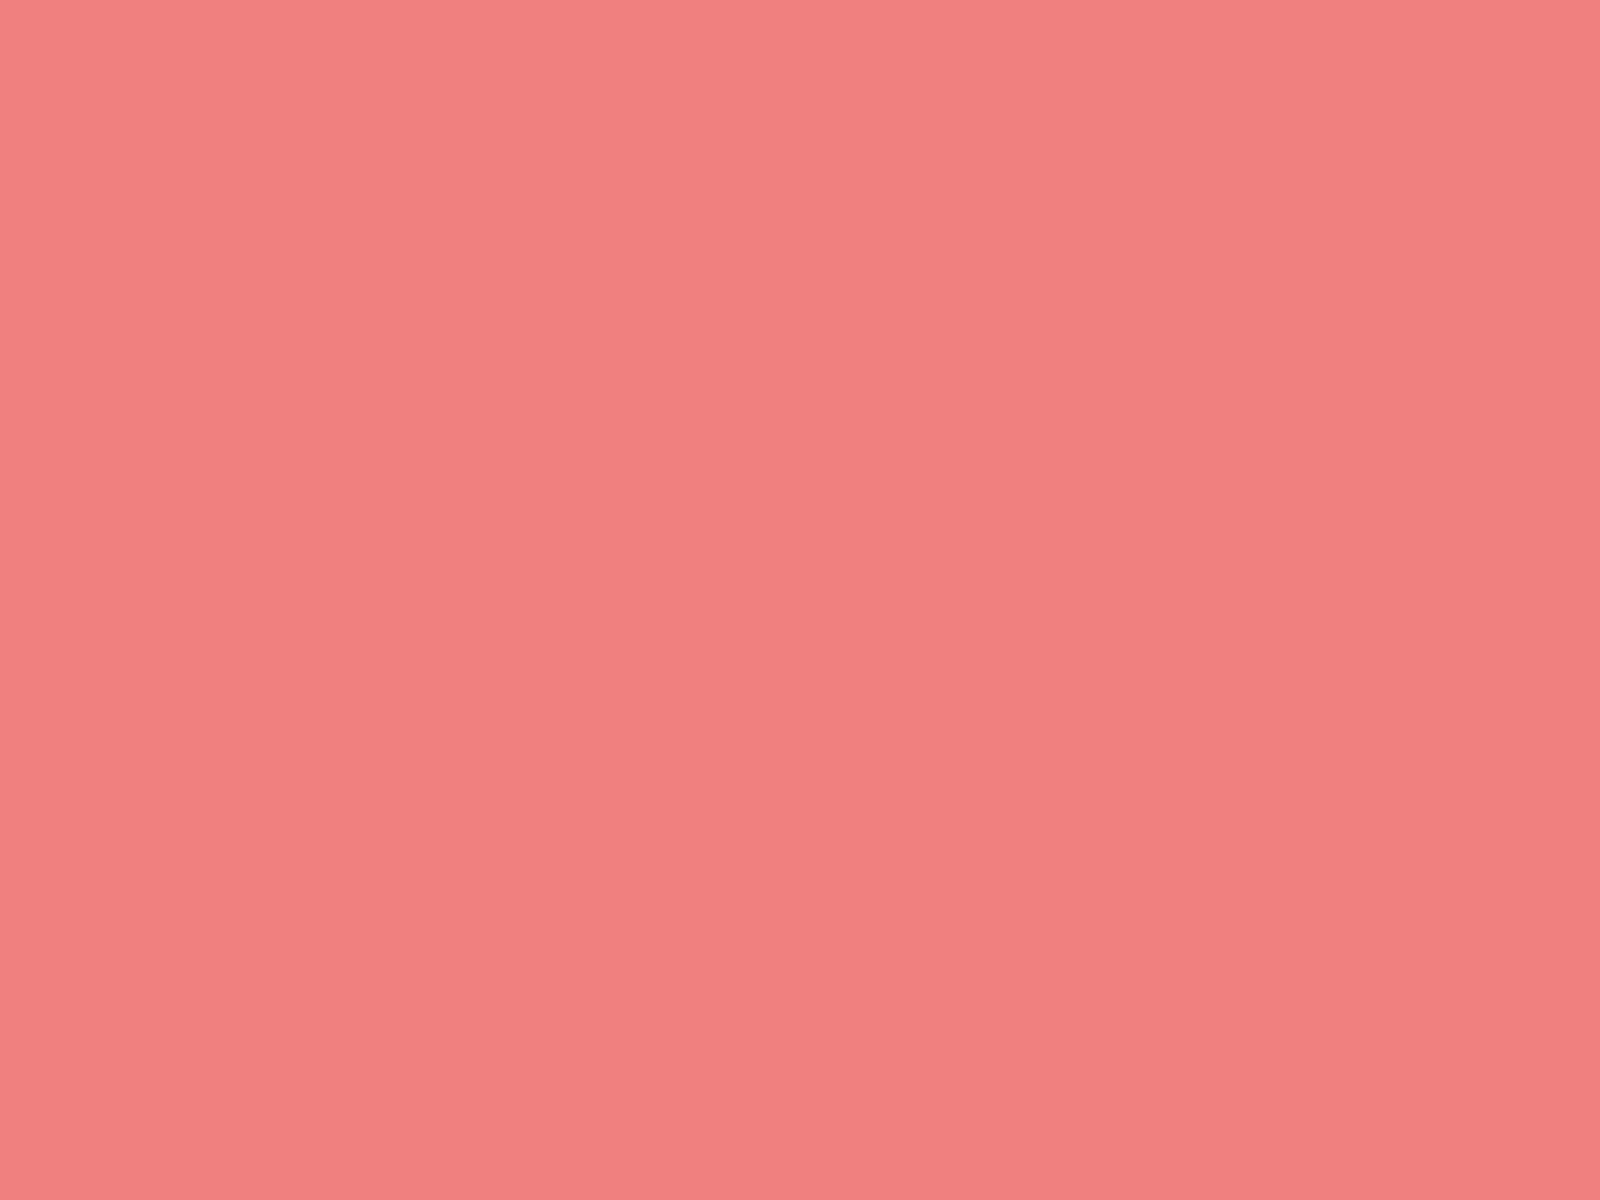 1600x1200 Light Coral Solid Color Background